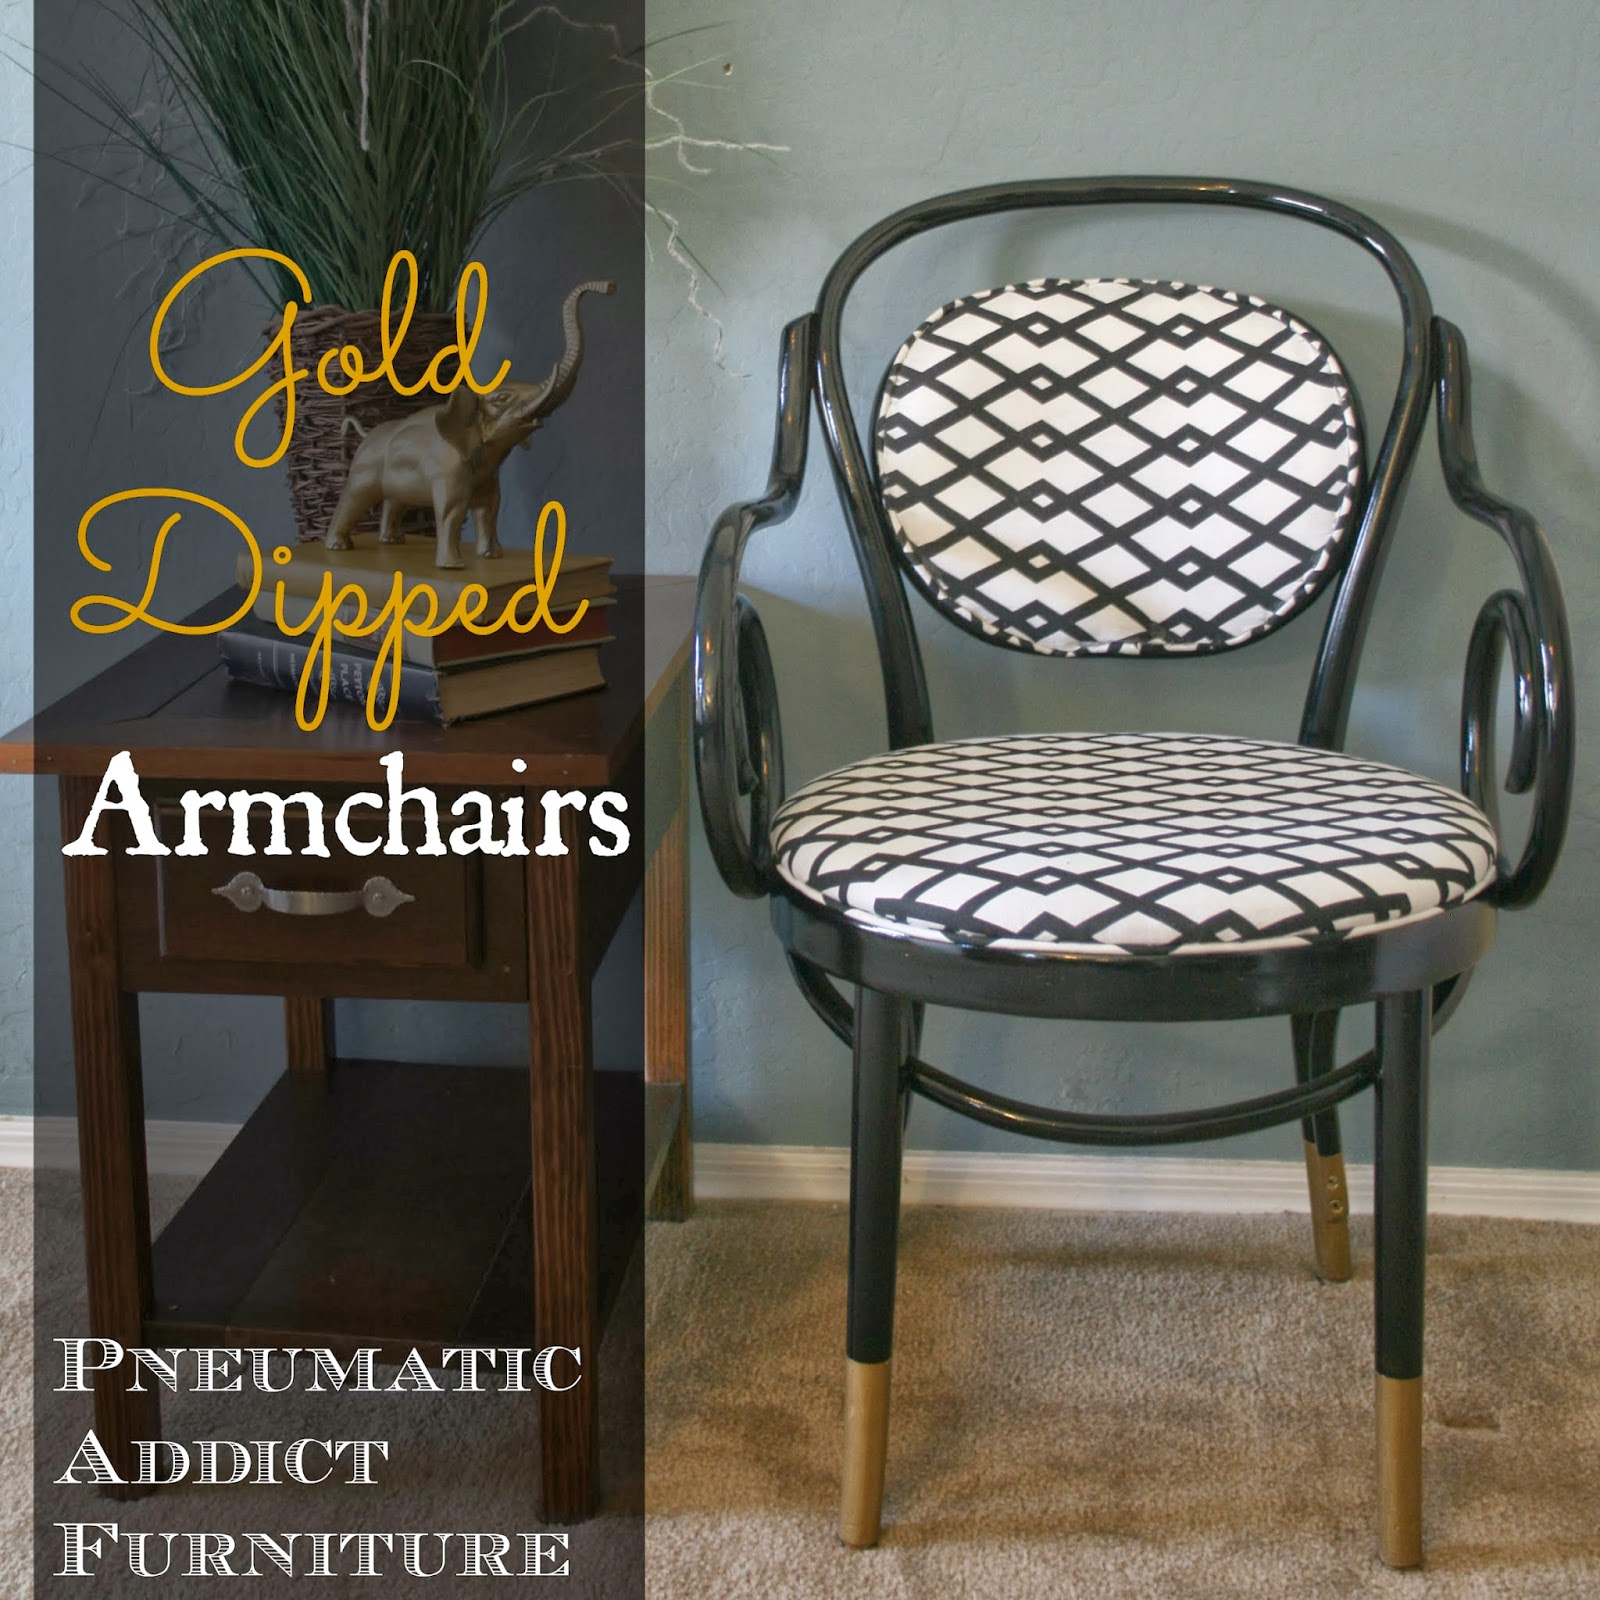 Gold Dipped Armchairs {AKA- The Chairs That Made Me Cry